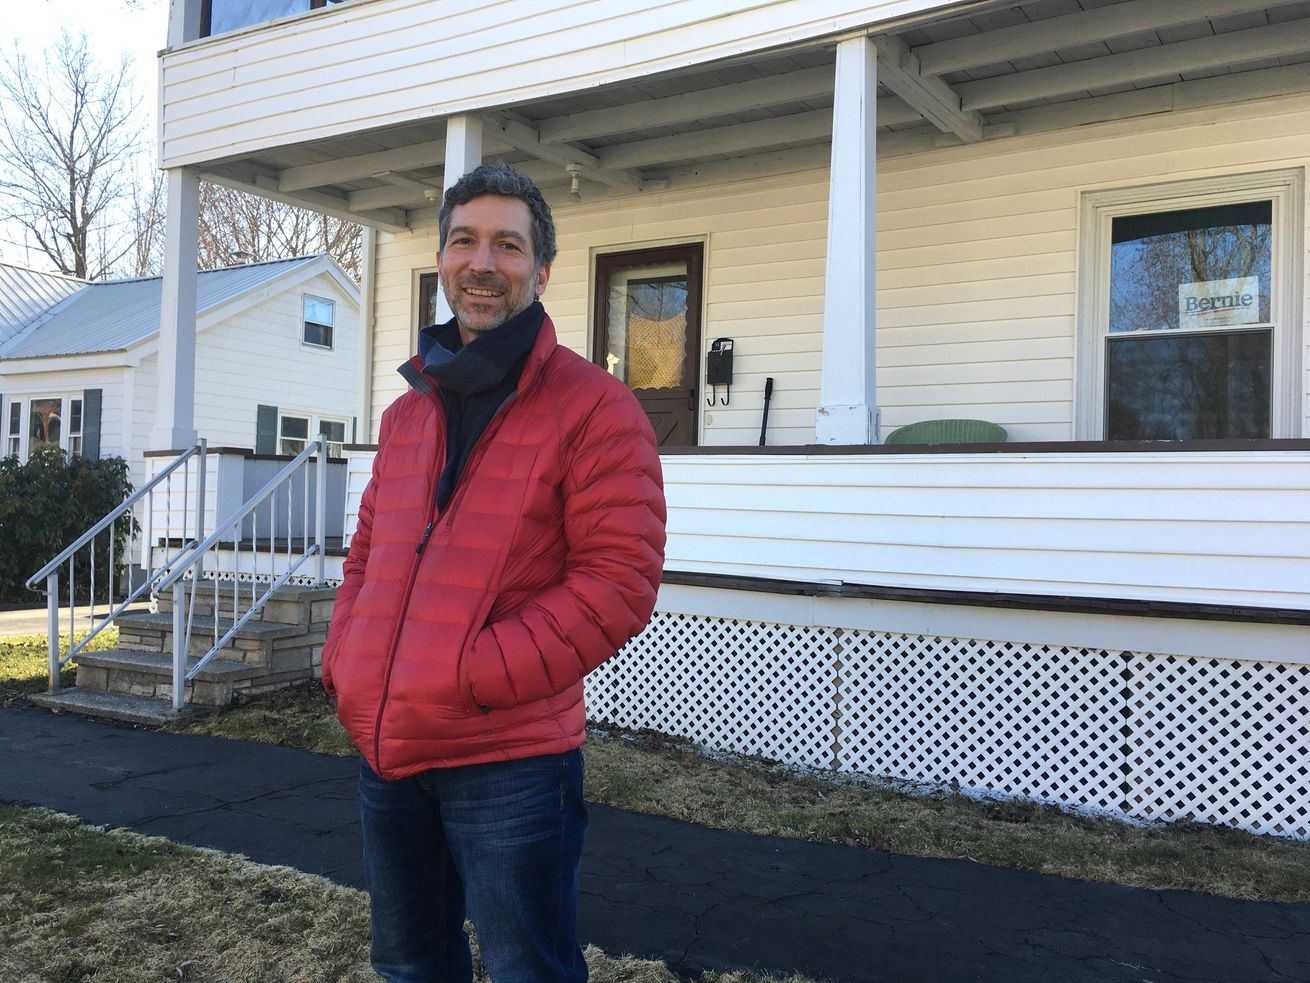 Nichols, in a red puffy jacket and jeans, stands in front of a two-story house on a sunny day.